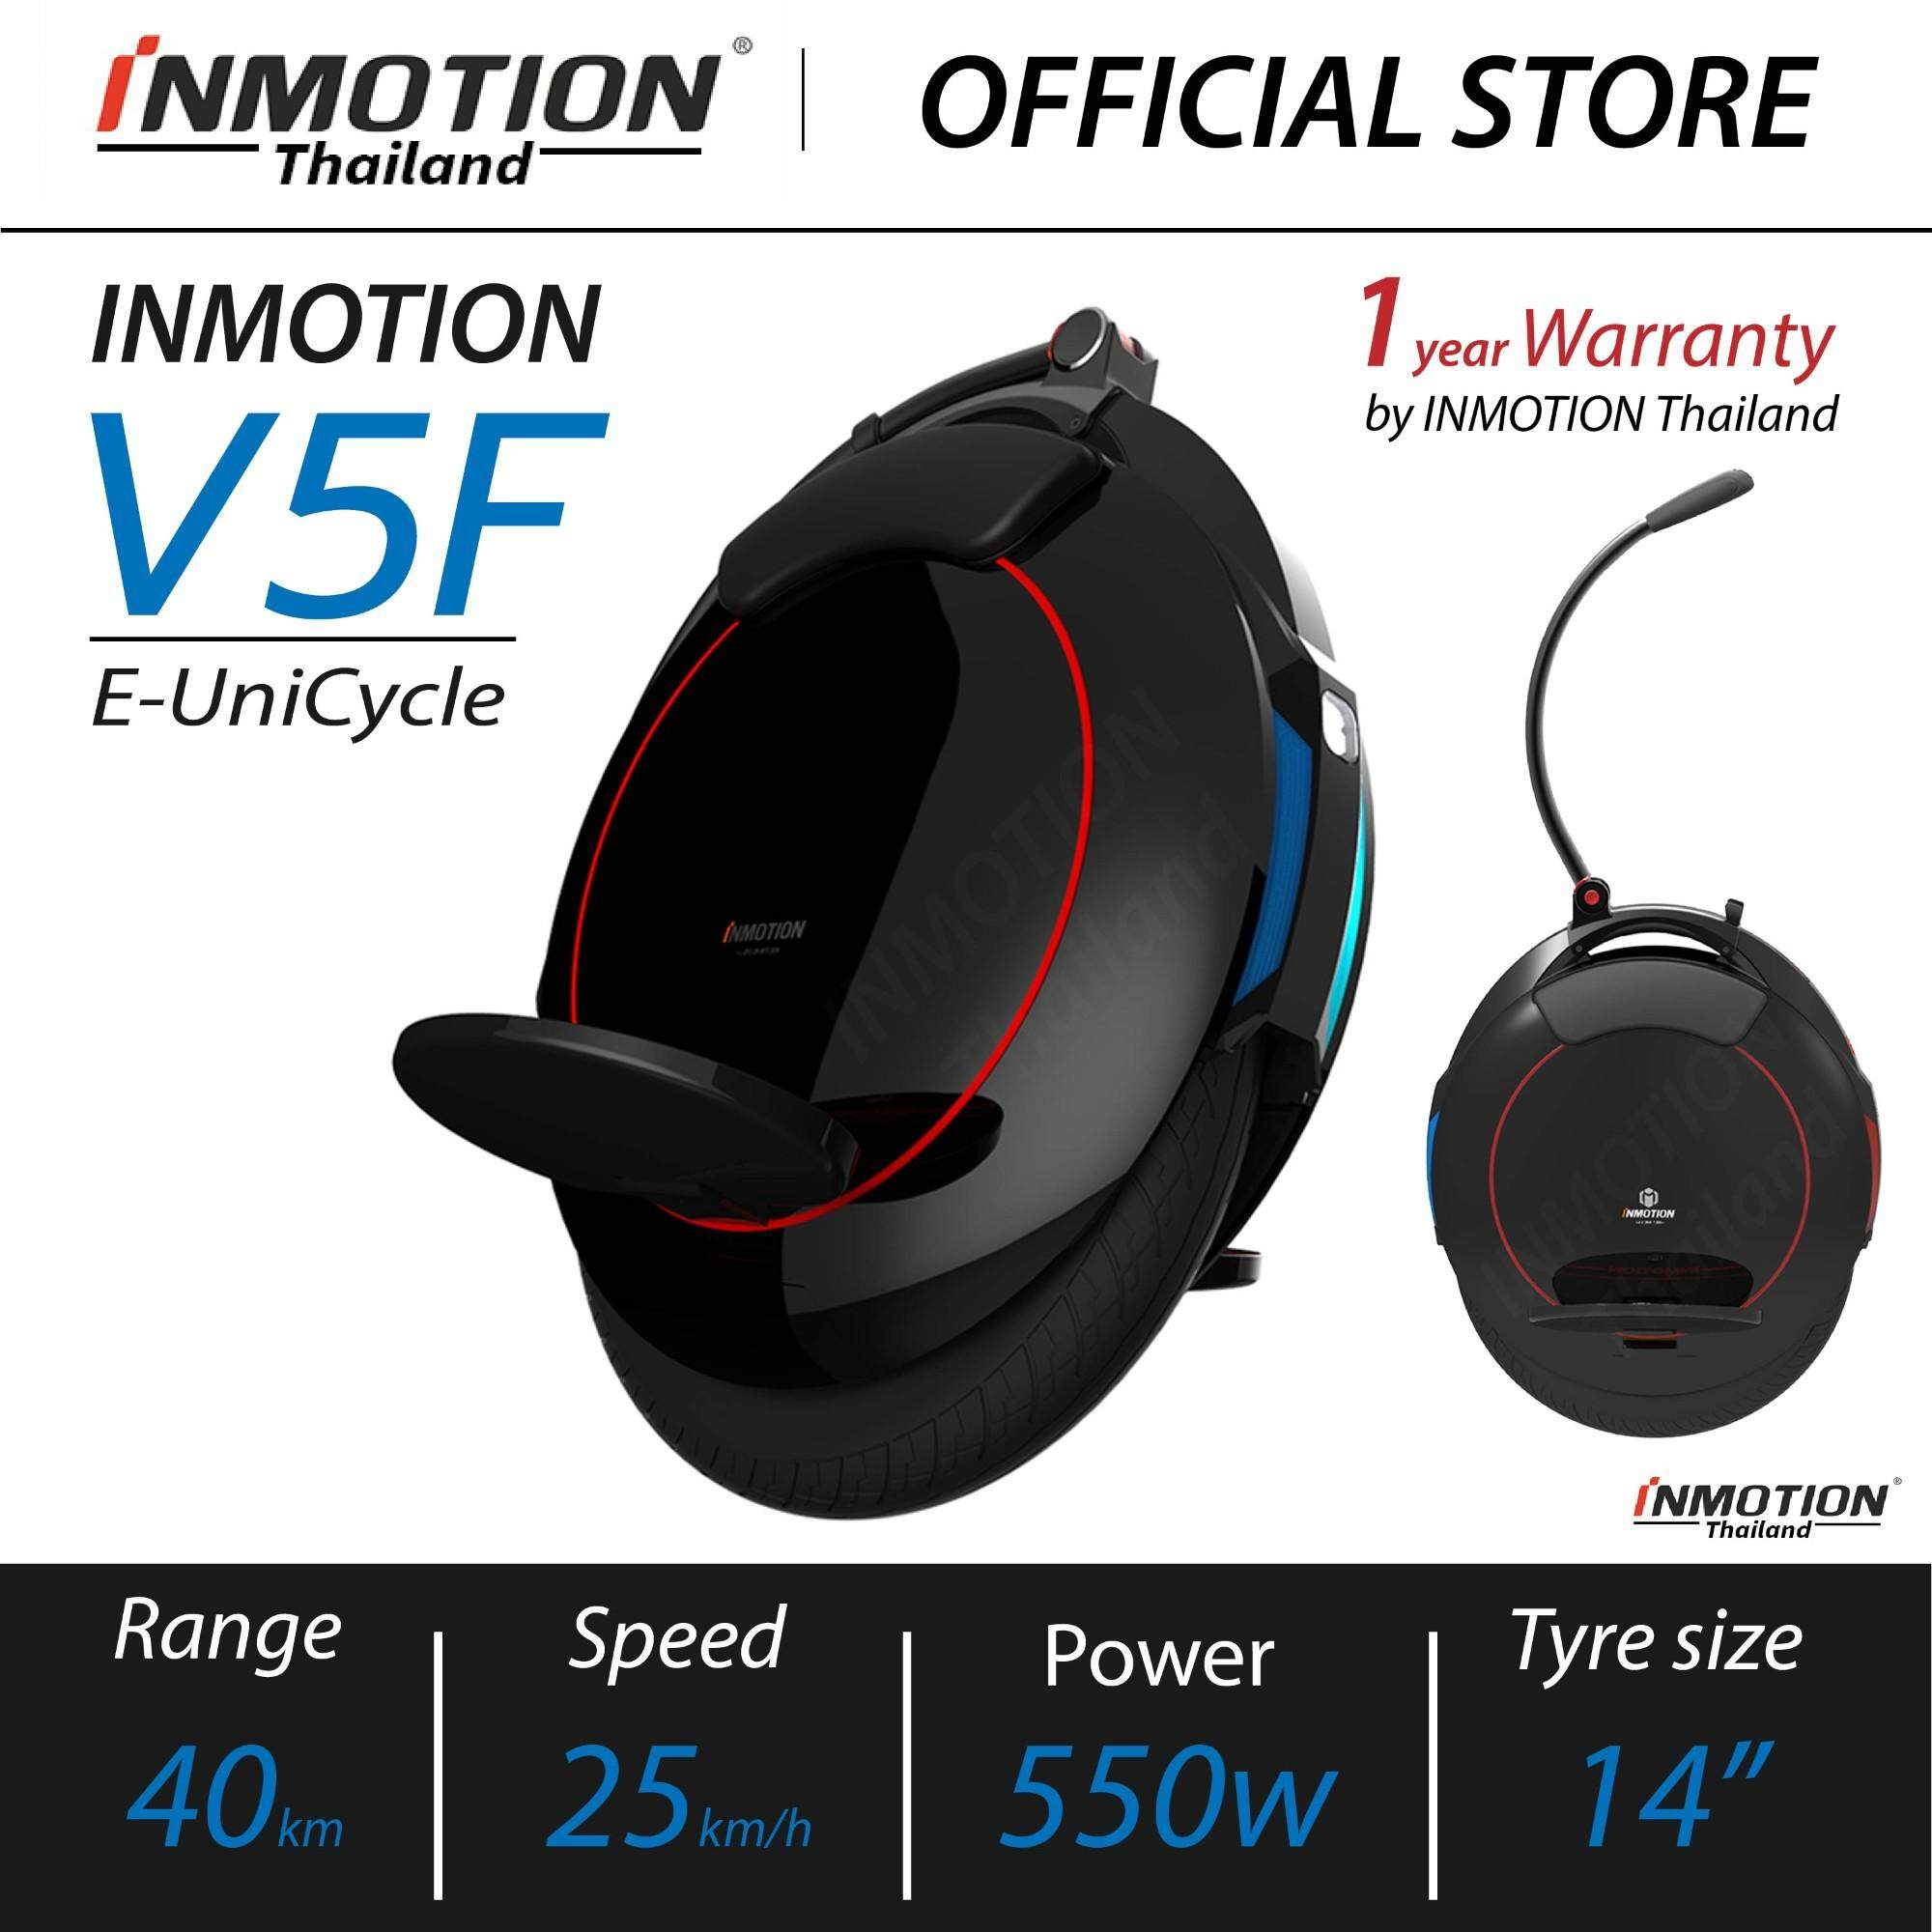 ล้อเดียวไฟฟ้า Inmotion V5f (v5f Electric Unicycle) By Inmotion Thailand (by Ewheels Thailand).